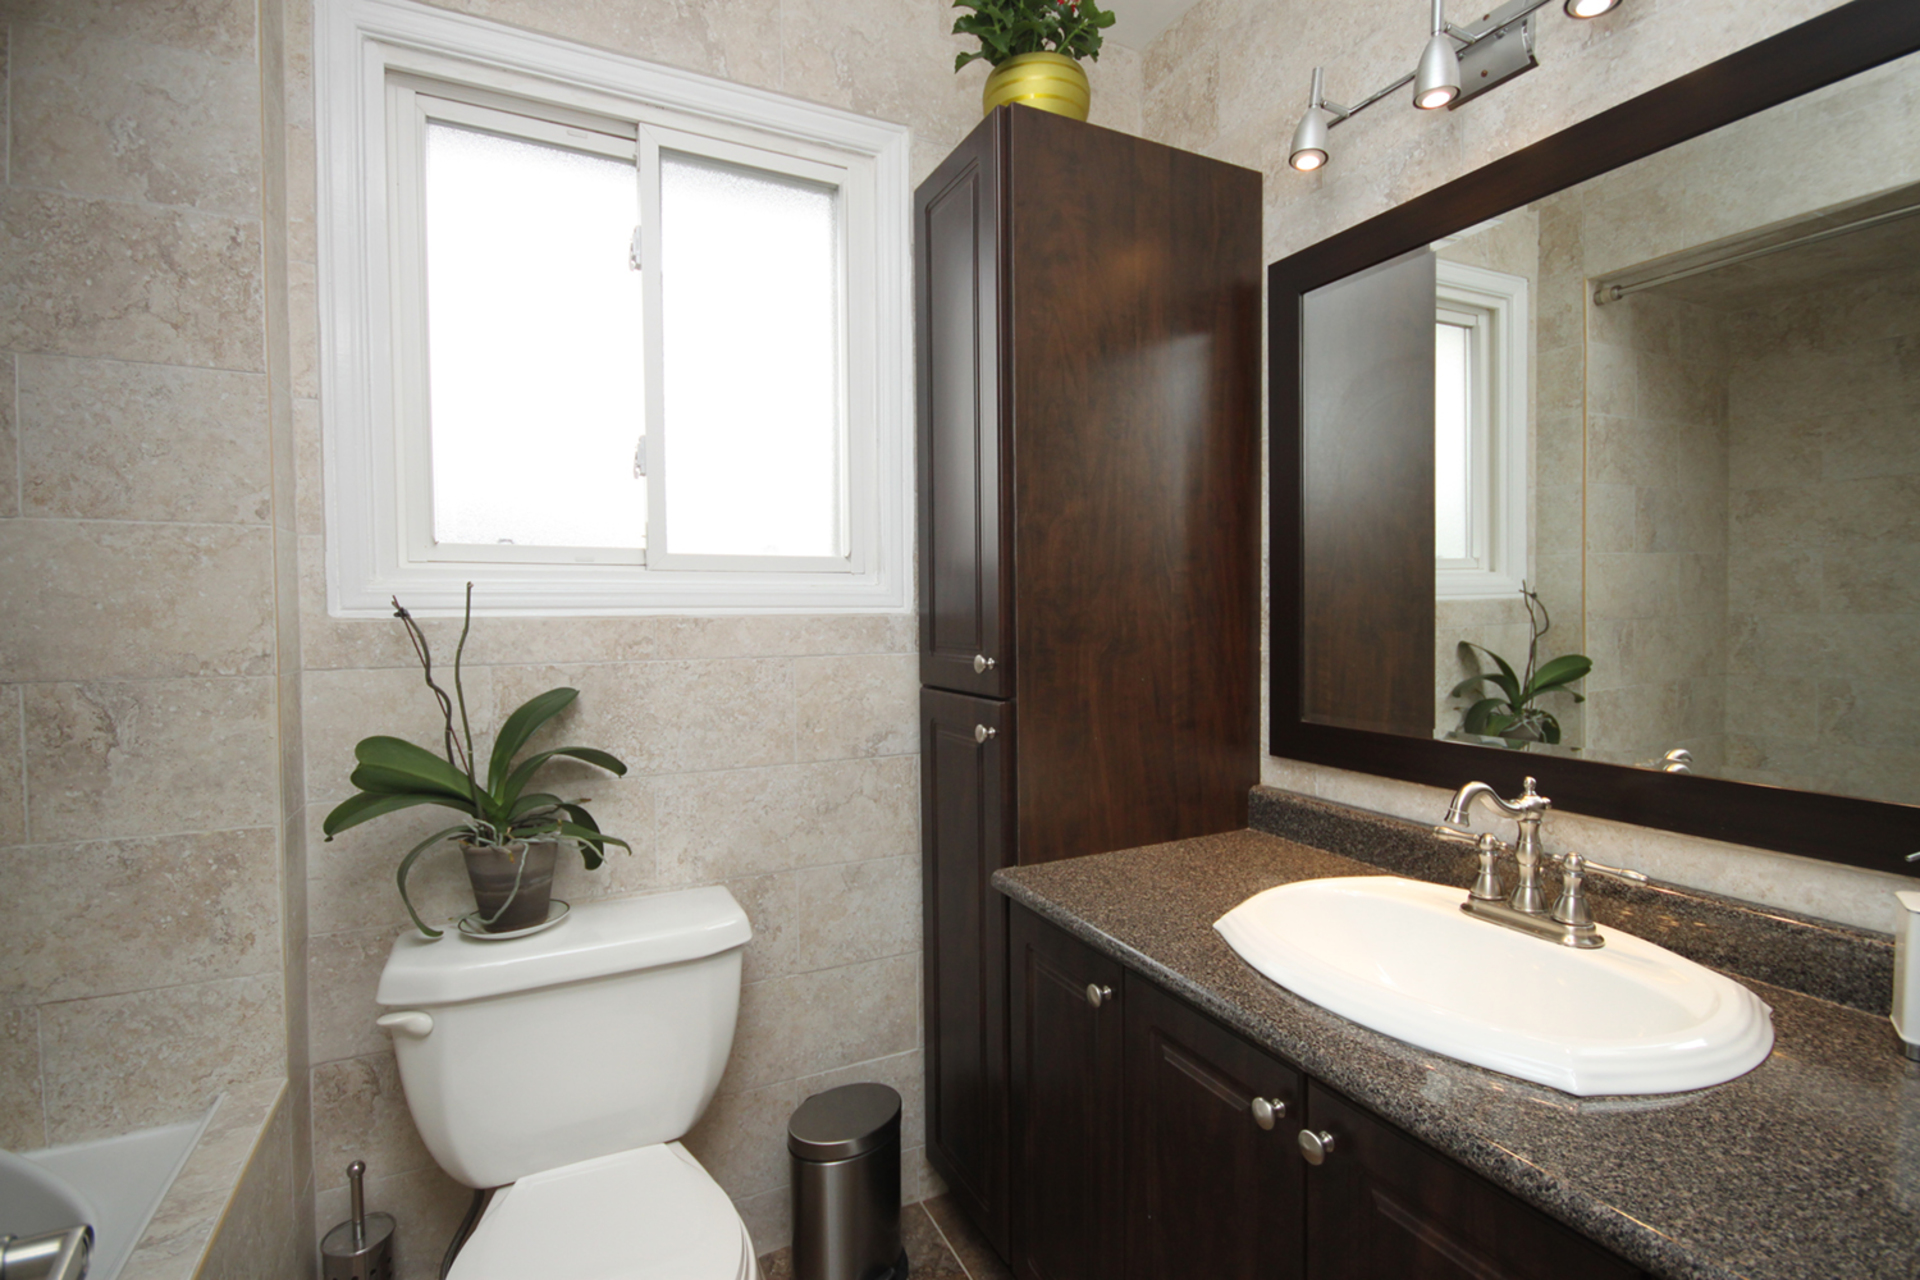 4 Piece Bathroom at 14 Gretman Crescent, Aileen-Willowbrook, Markham